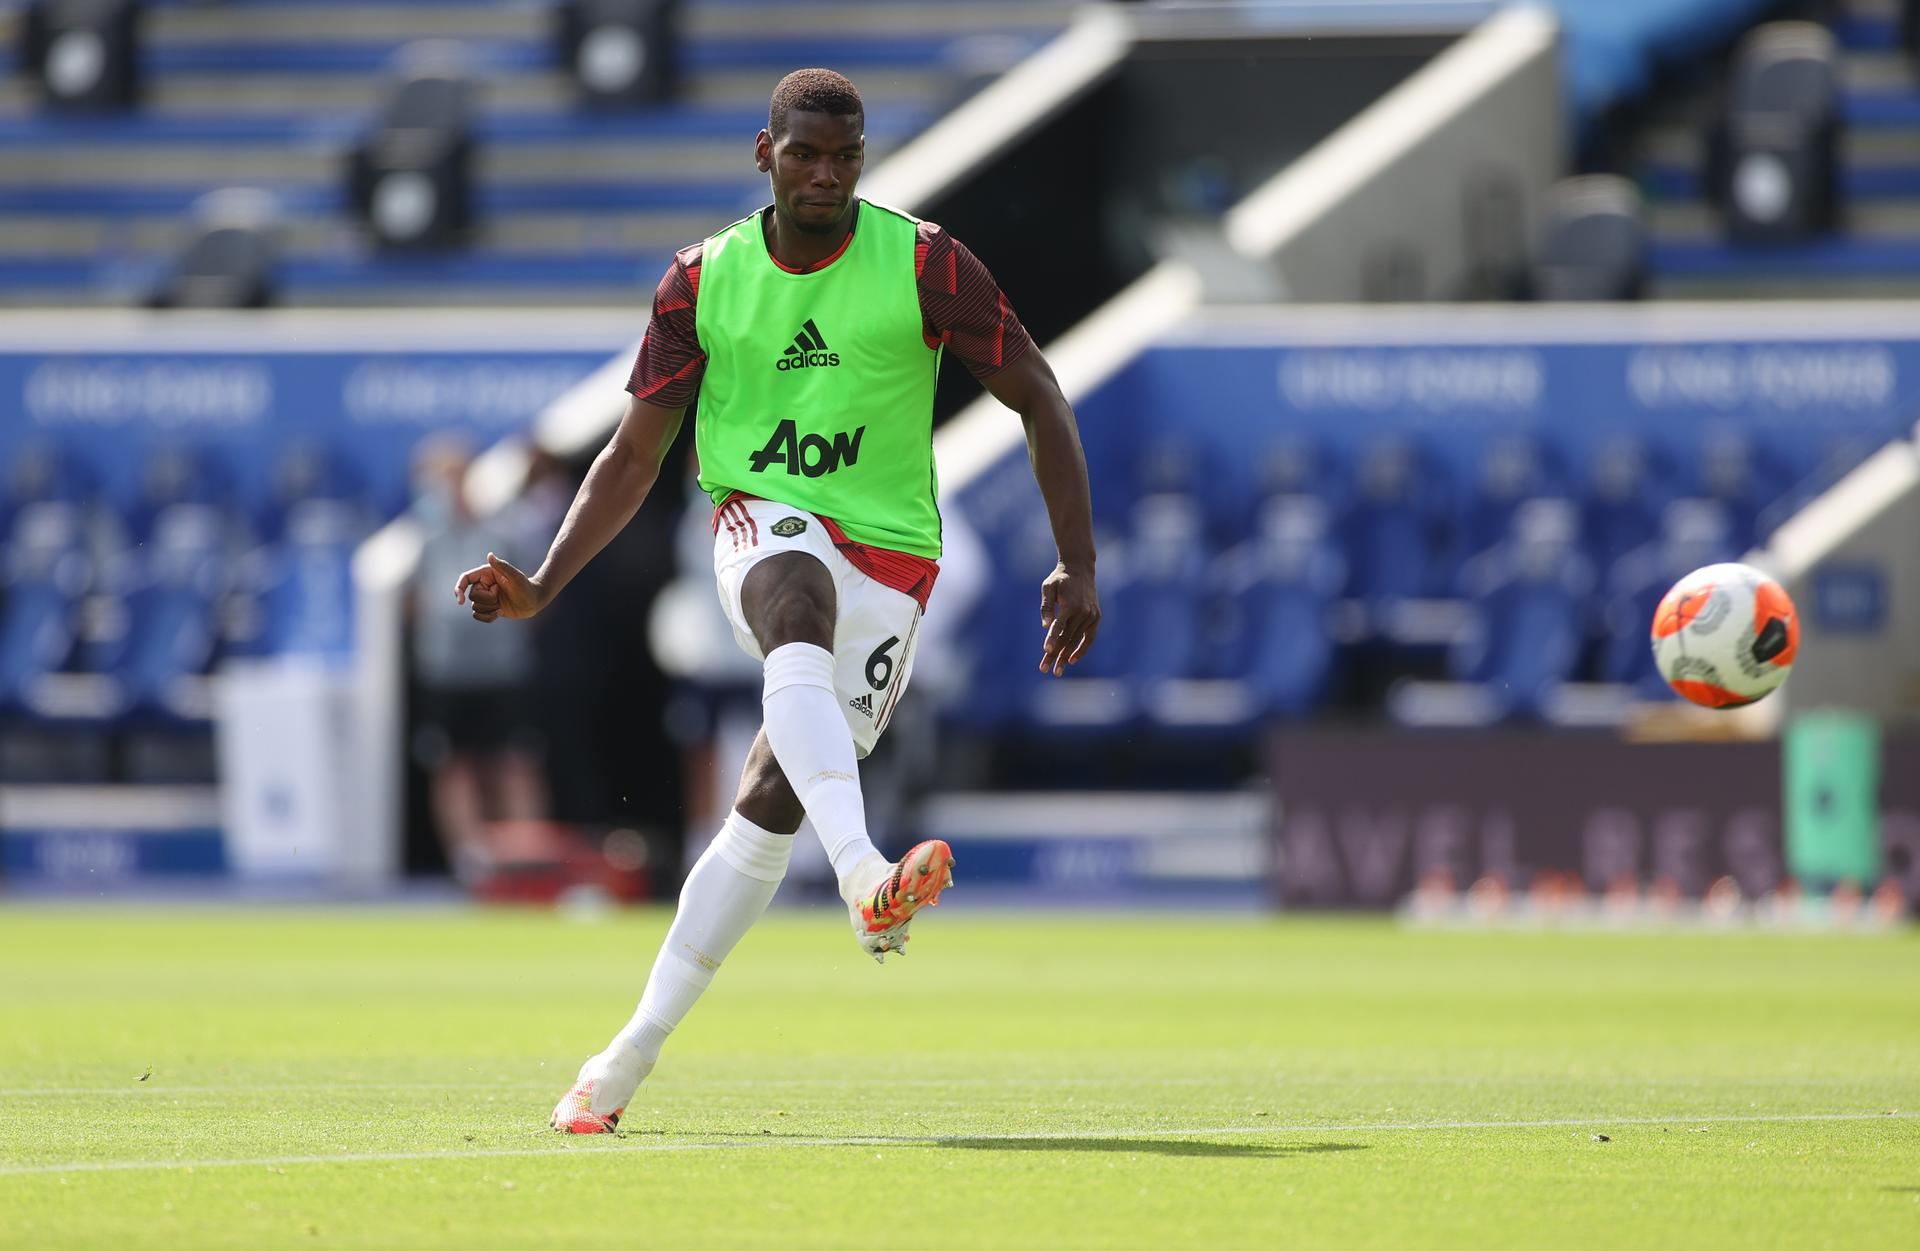 Pogba left out of France squad after testing positive for COVID-19